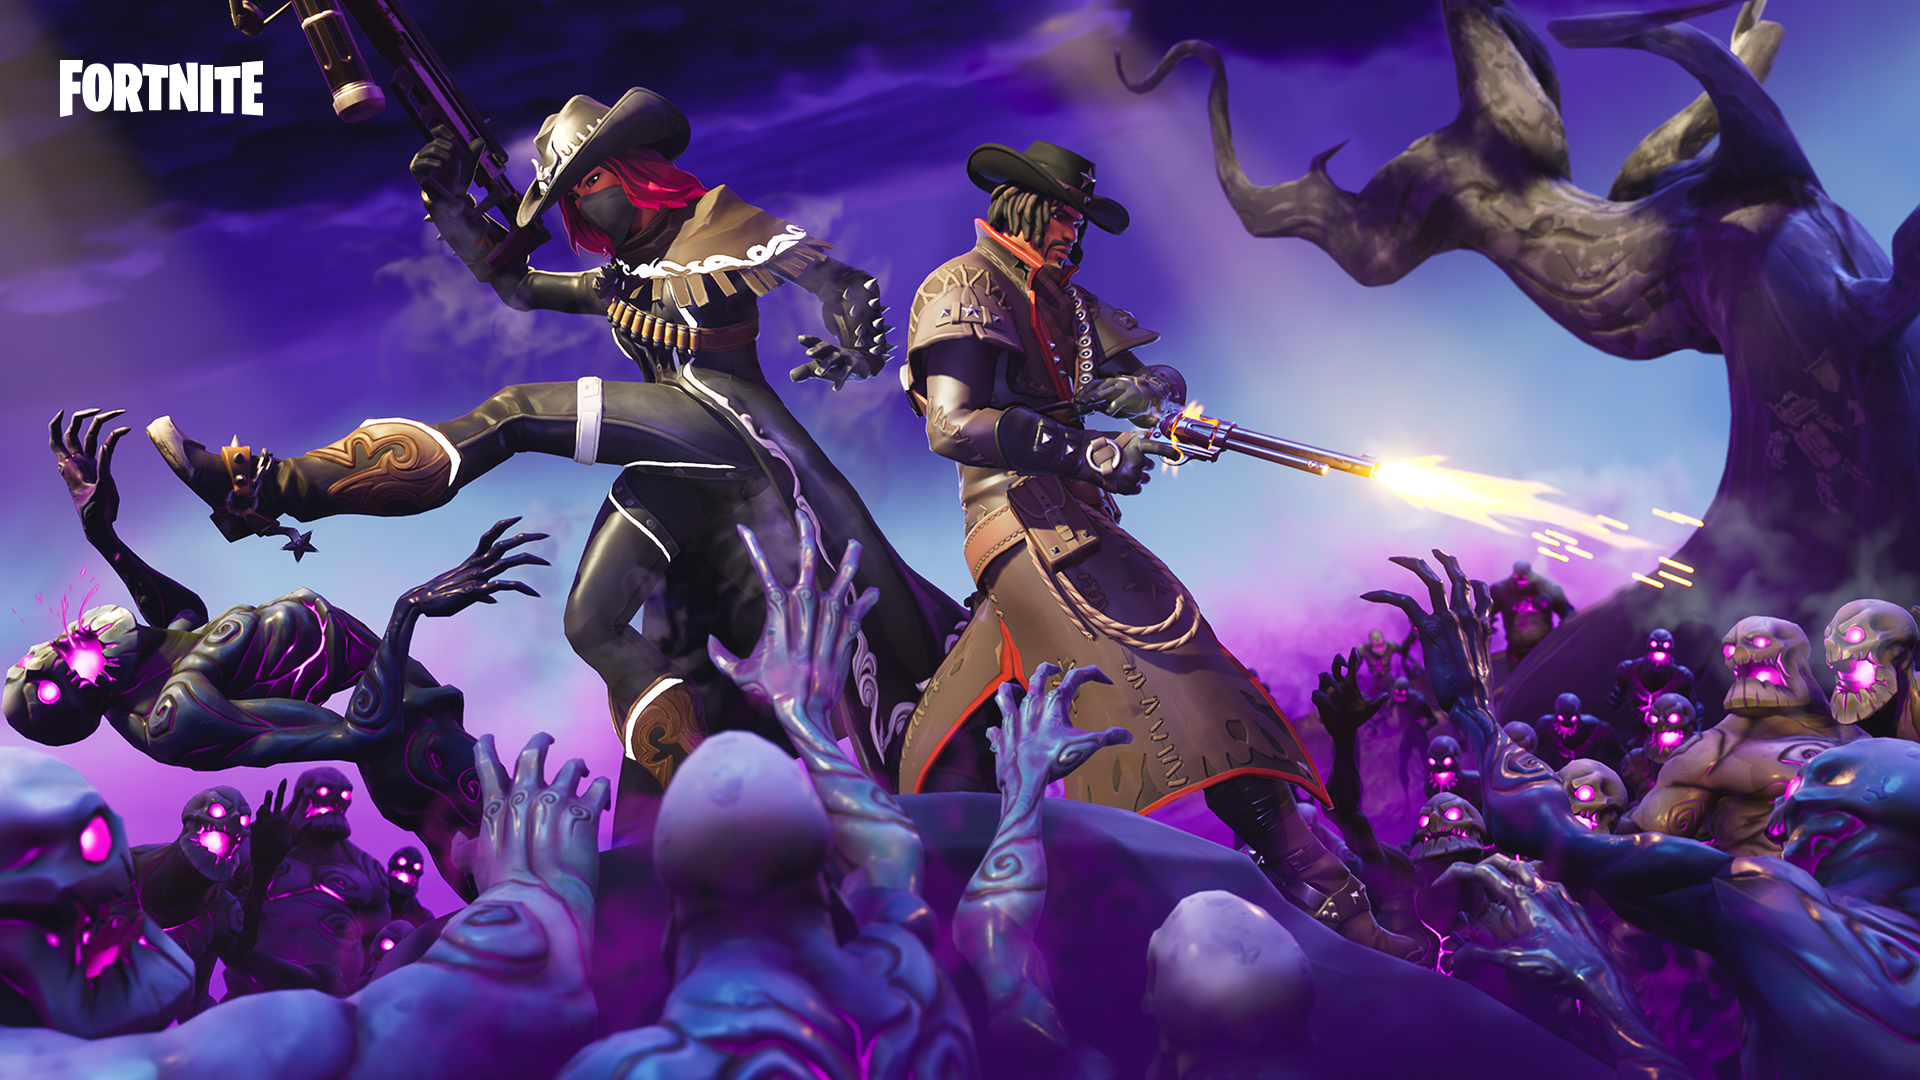 Fortnite S Cube Monsters Aren T Gone Just Yet The Verge